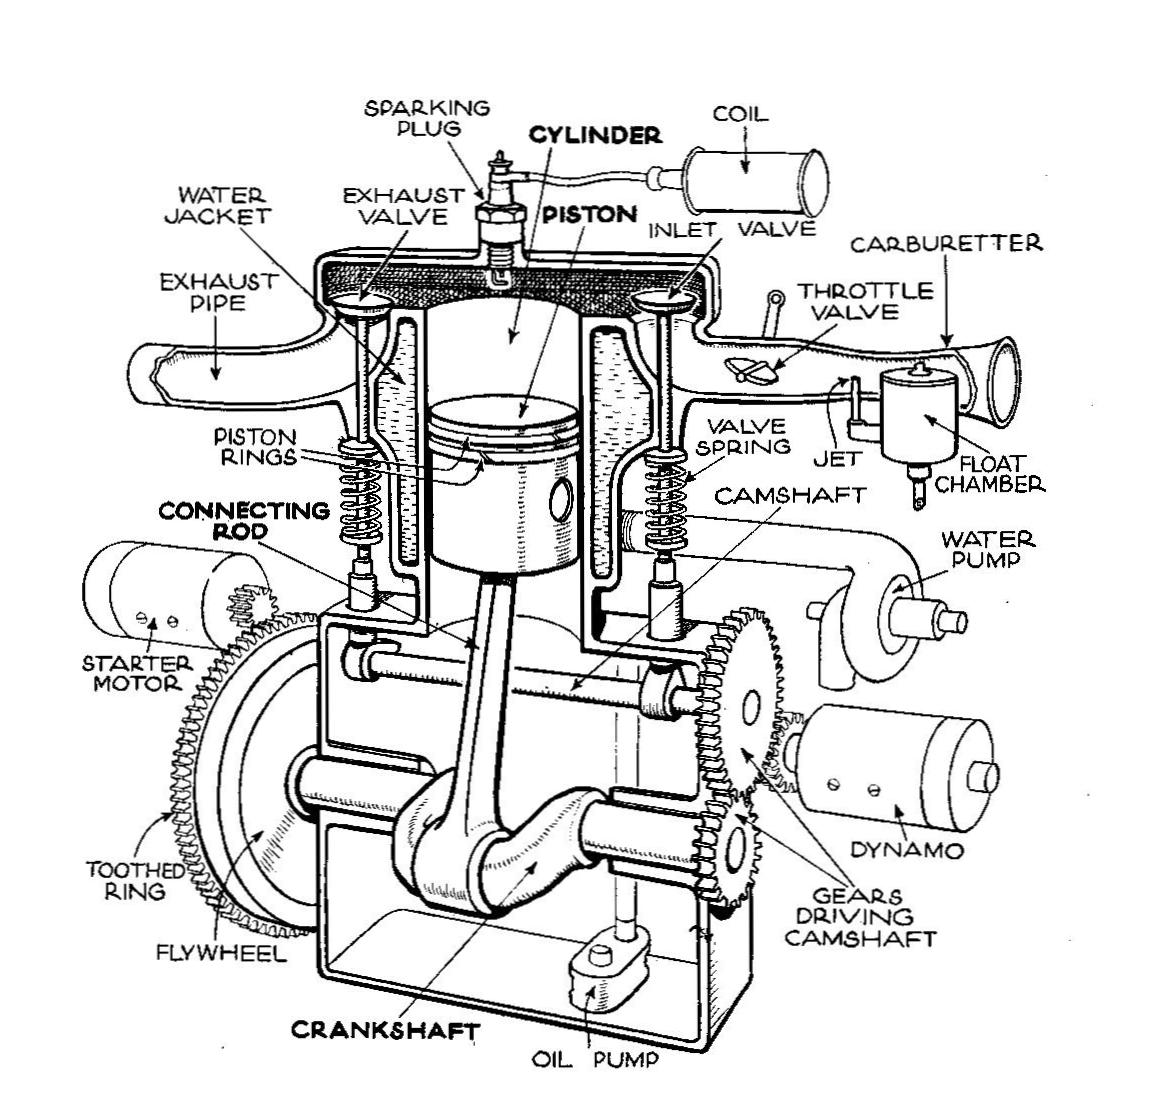 Harley Evolution Engine Single Cam Diagram Trusted Wiring Diagrams Shovelhead Davidson Full Hd Maps Locations Another Basic